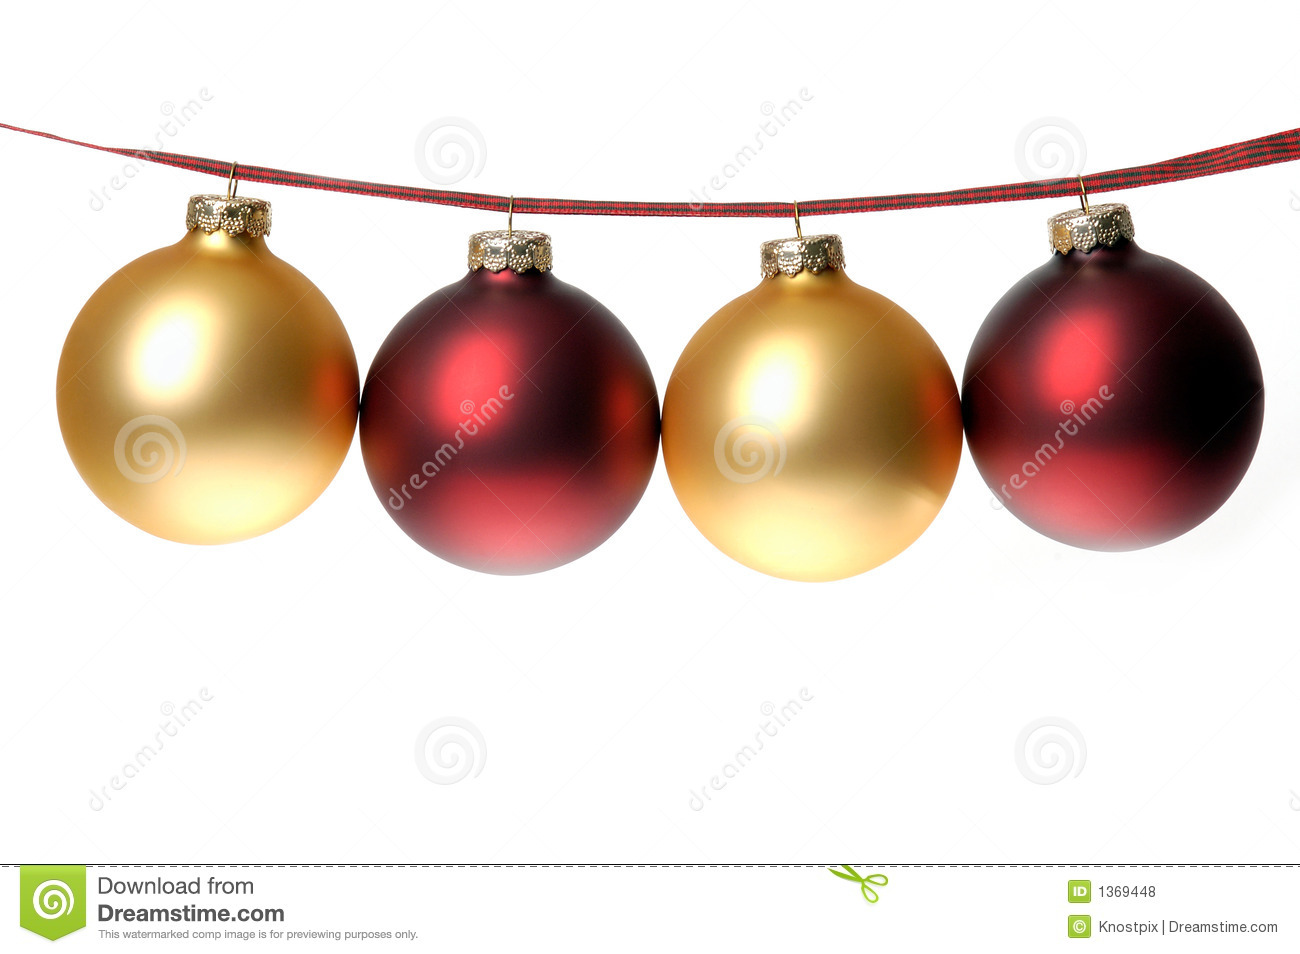 christmas photo of red and gold ornaments strung on plaid ribbon